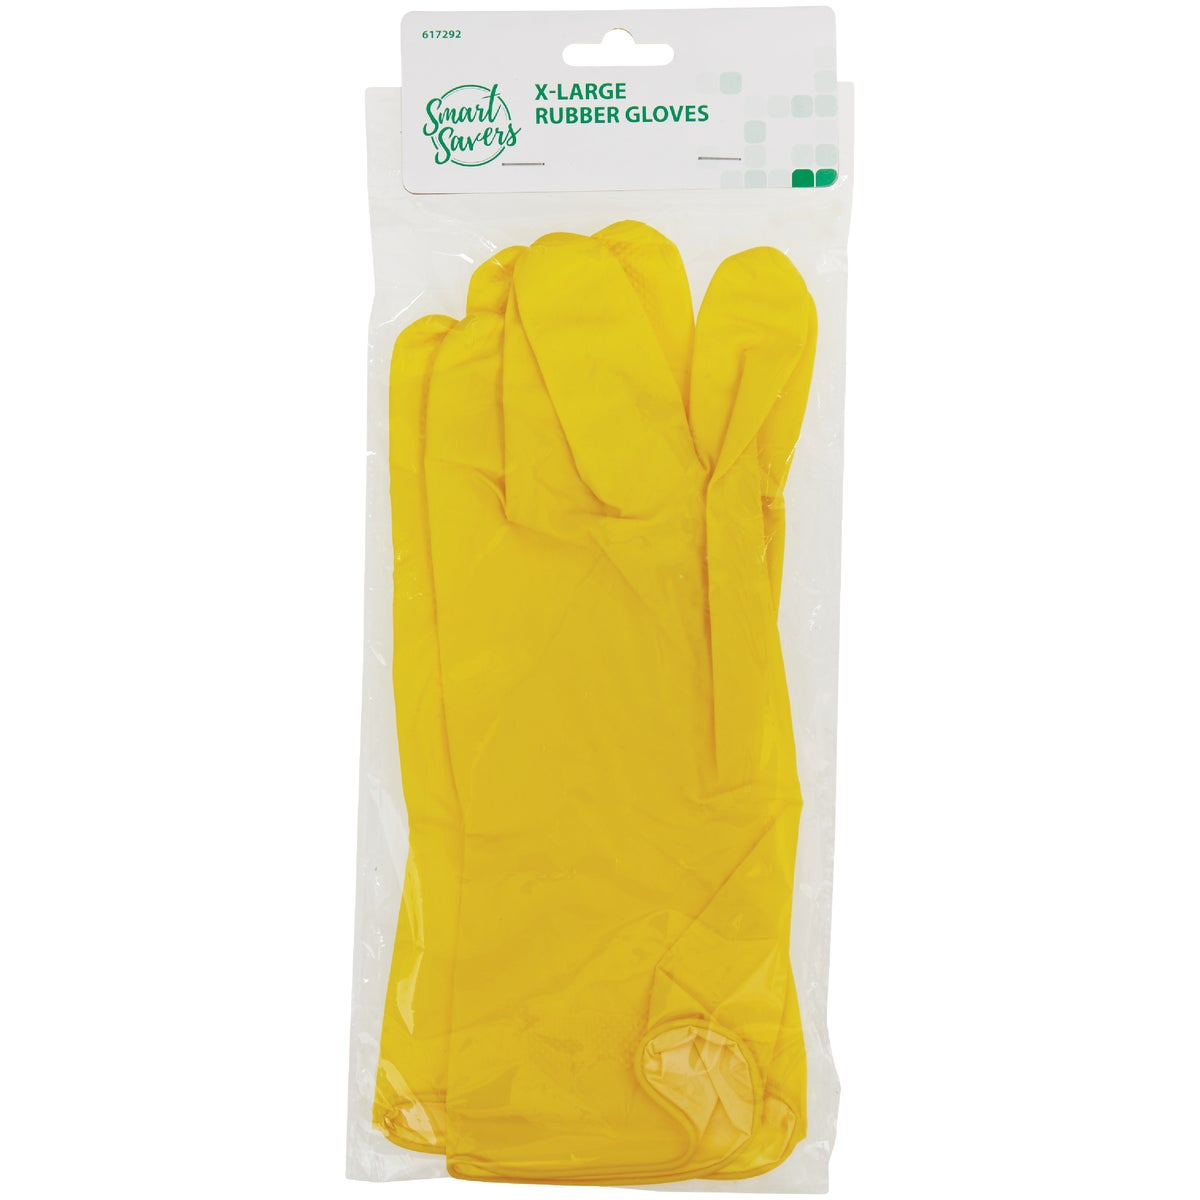 Do it Best Imports X LARGE RUBBER GLOVES CC301030